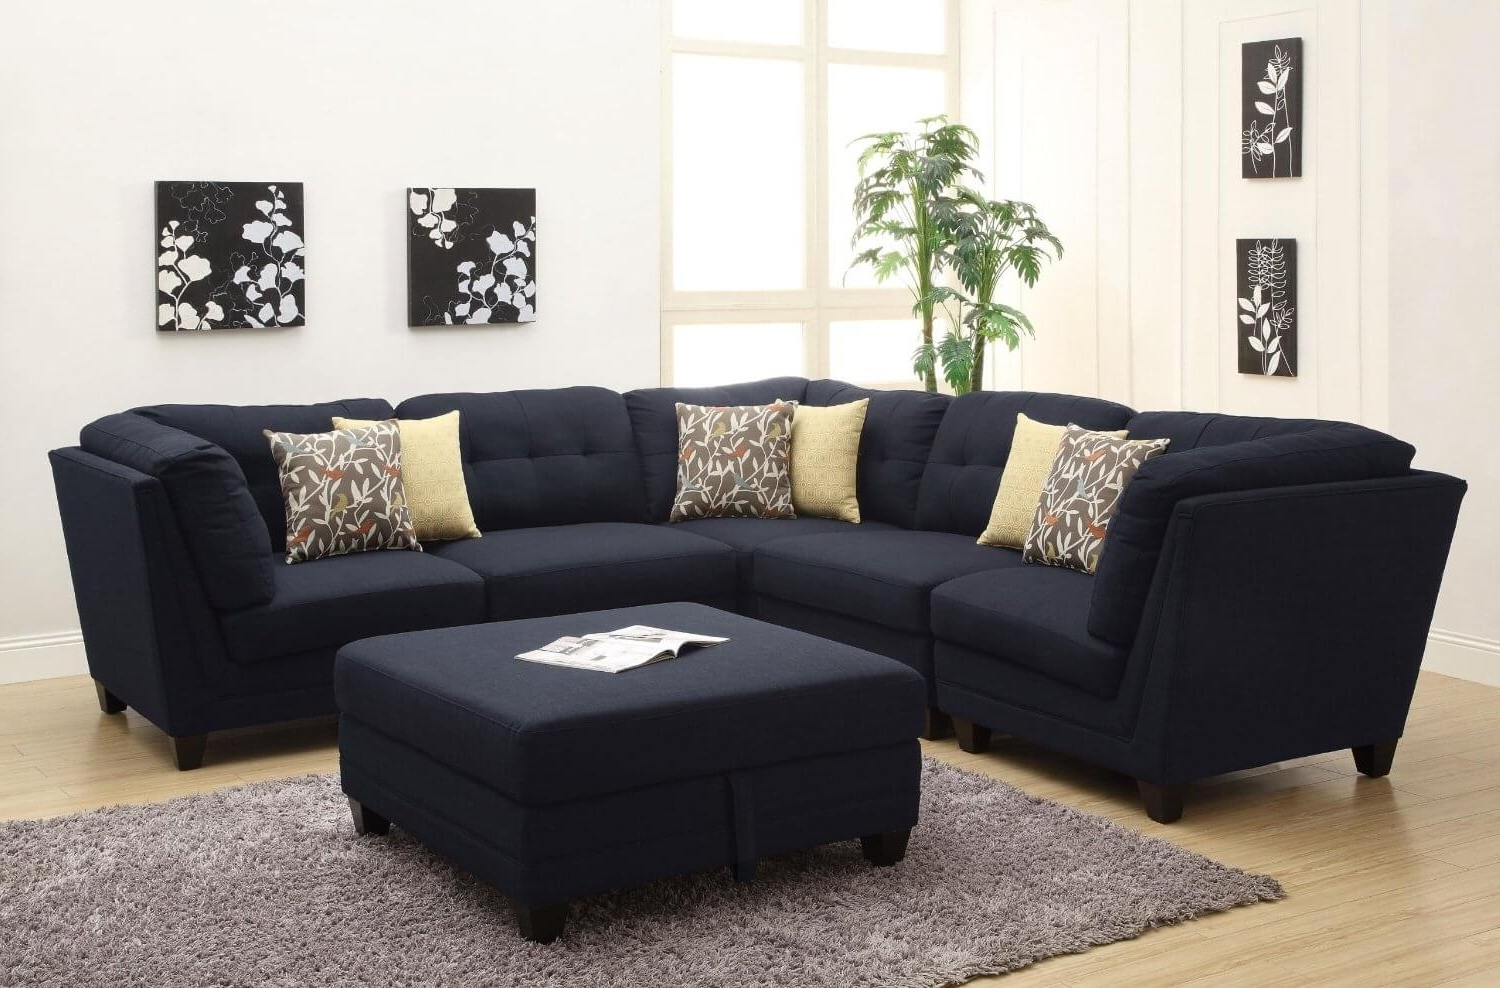 Favorite Eco Friendly Sectional Sofas Regarding 100 Awesome Sectional Sofas Under $1,000 (2018) (View 7 of 20)